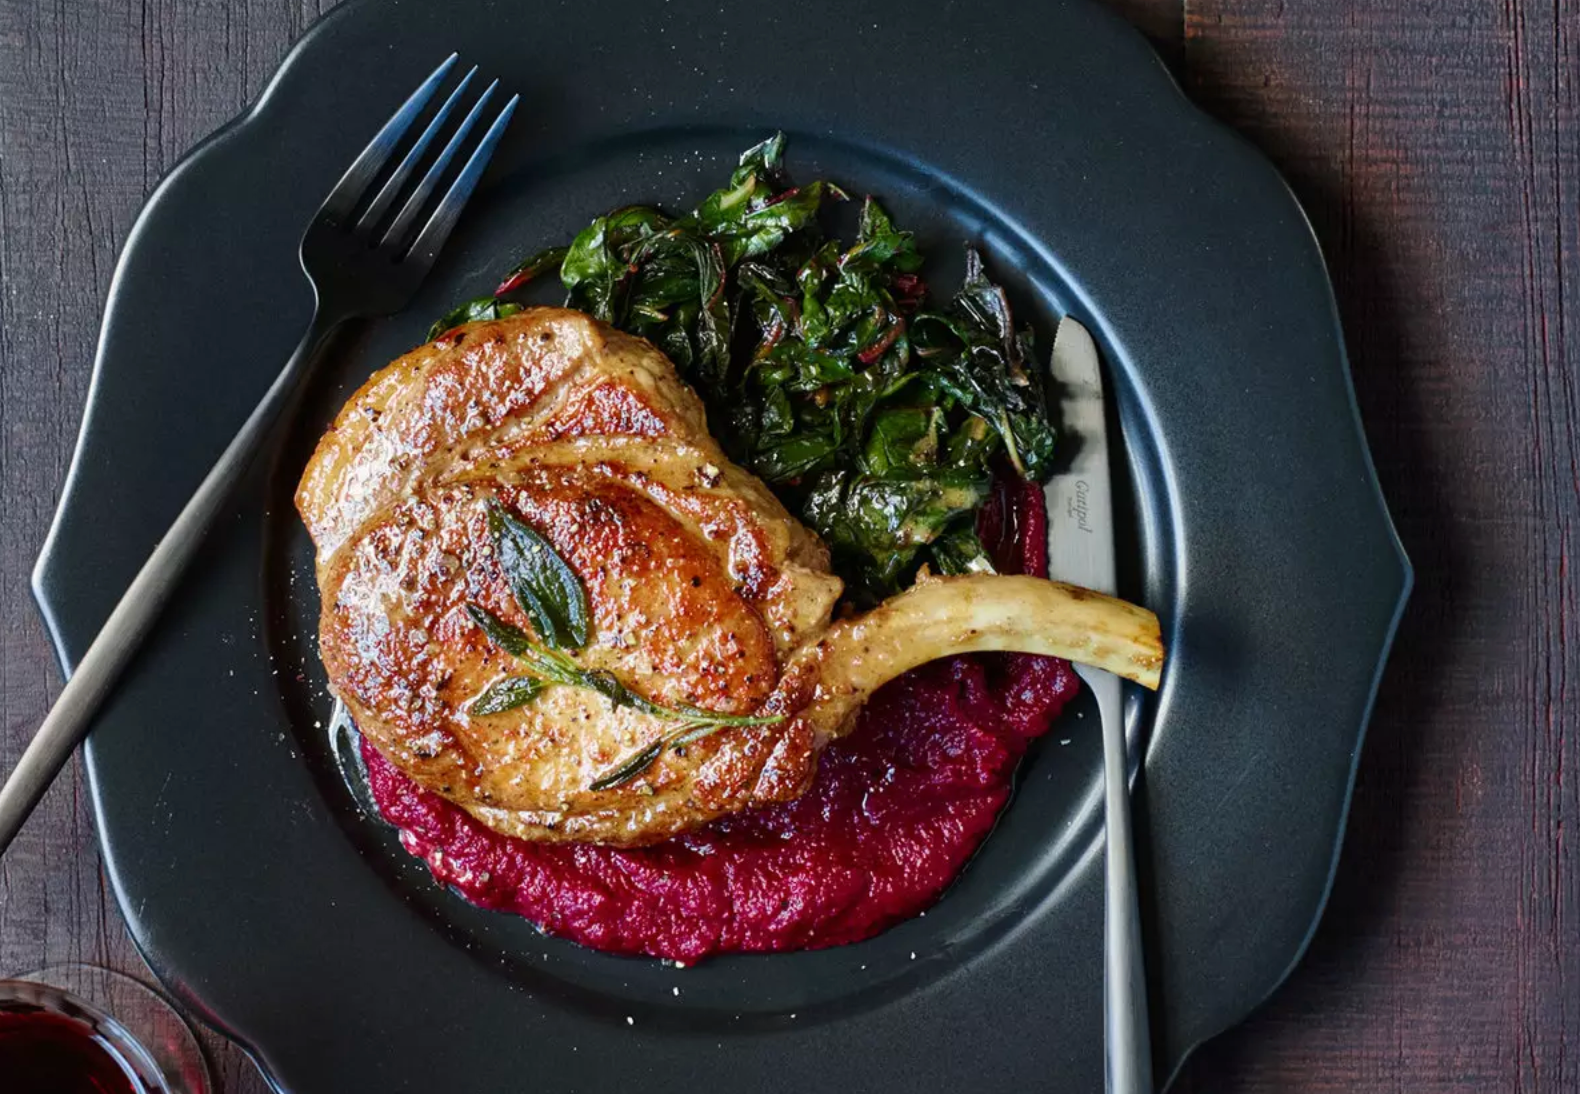 Pork Chops in Sage Butter with Beet Puree and Swiss Chard from Food and Wine